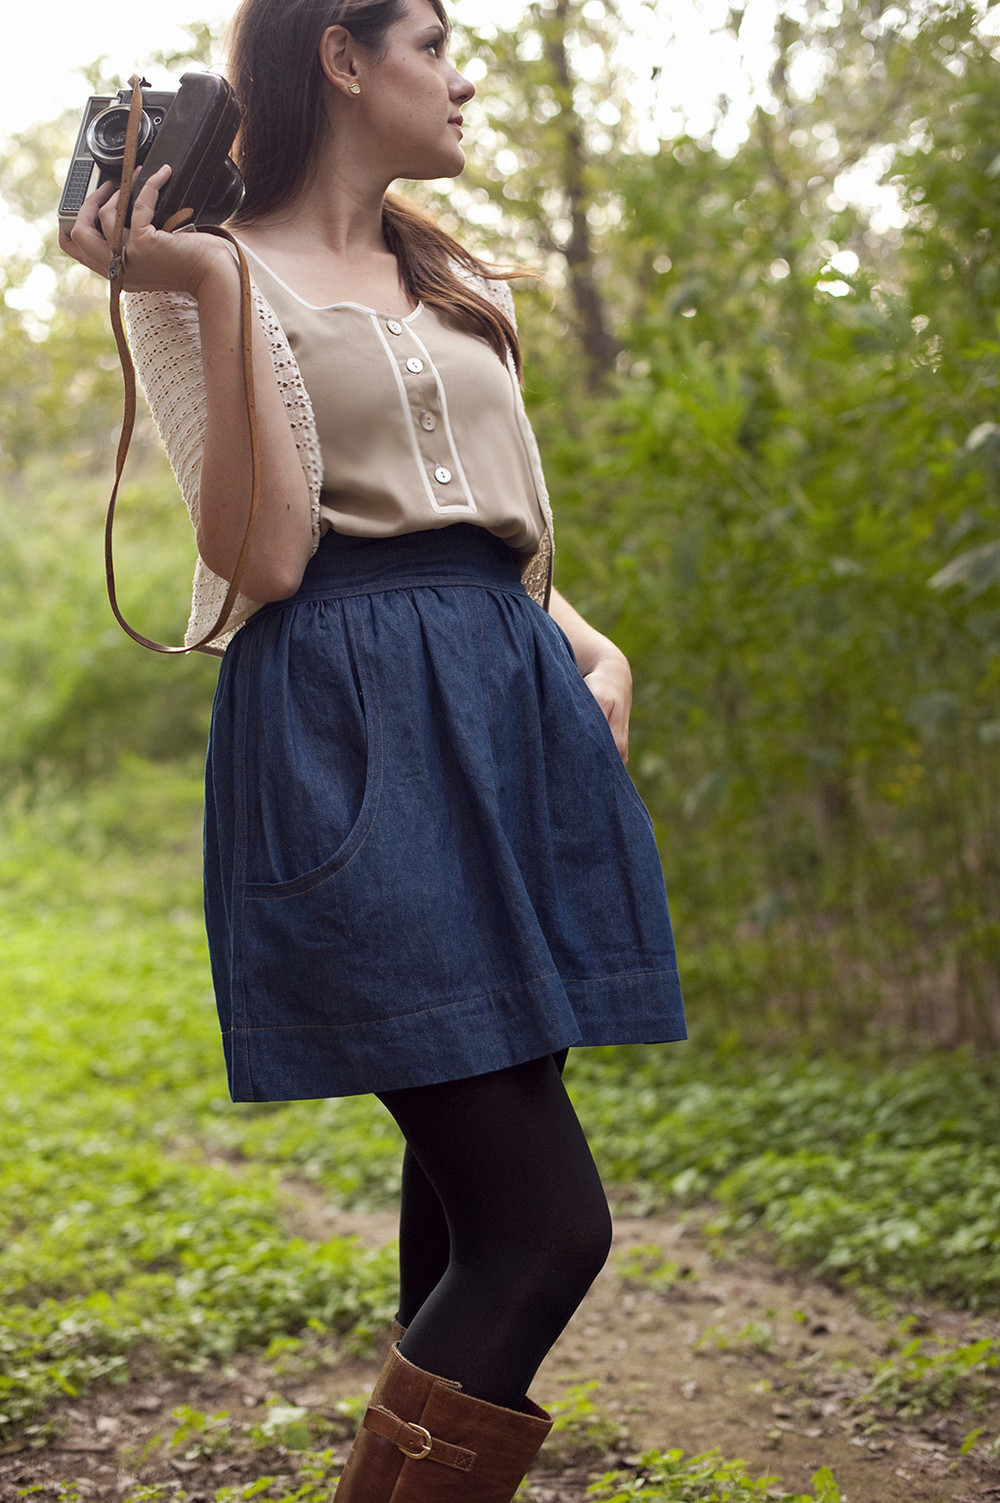 Brumby Skirt Sewing Pattern by Megan Nielsen